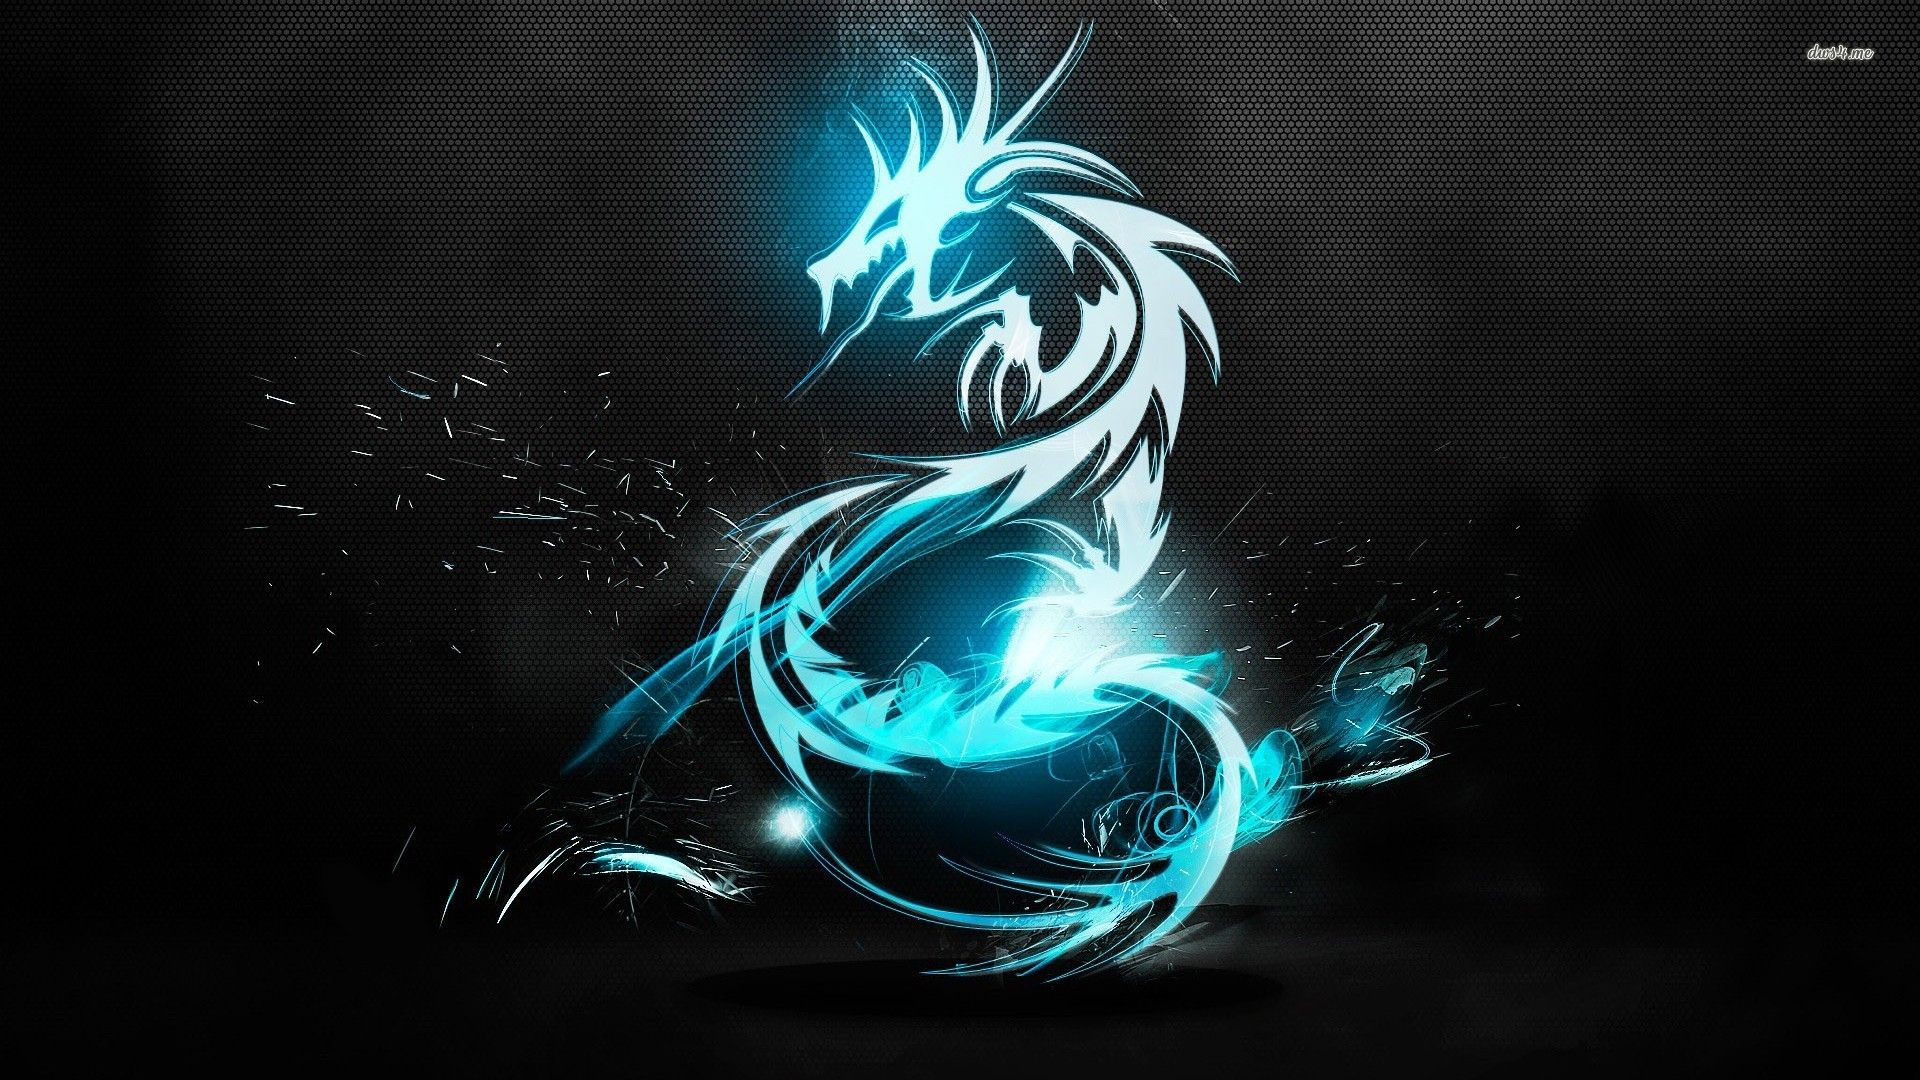 Wallpapers for dragon backgrounds hd dragons pinterest wallpapers for dragon backgrounds hd voltagebd Gallery